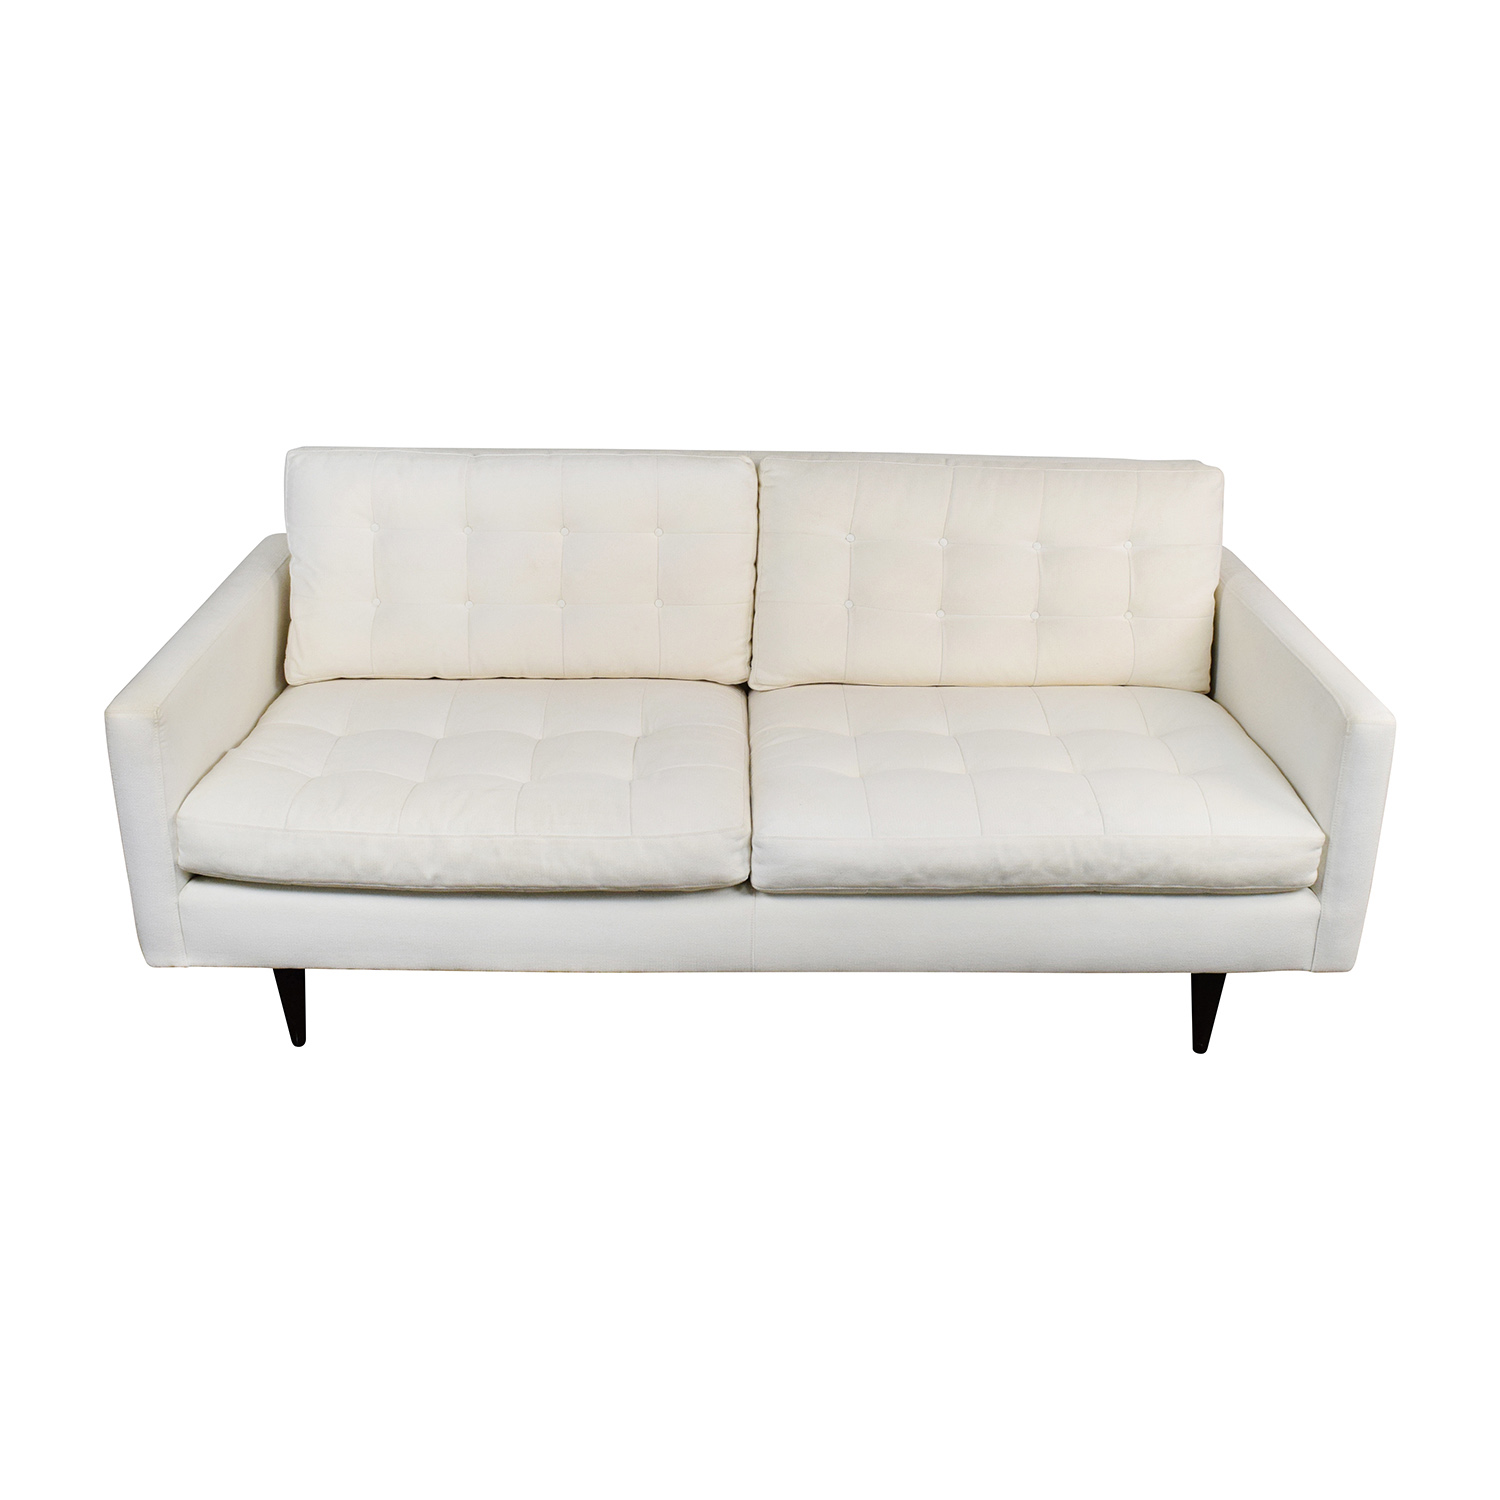 Crate and Barrel Crate & Barrel White Twill Tufted Sofa nj